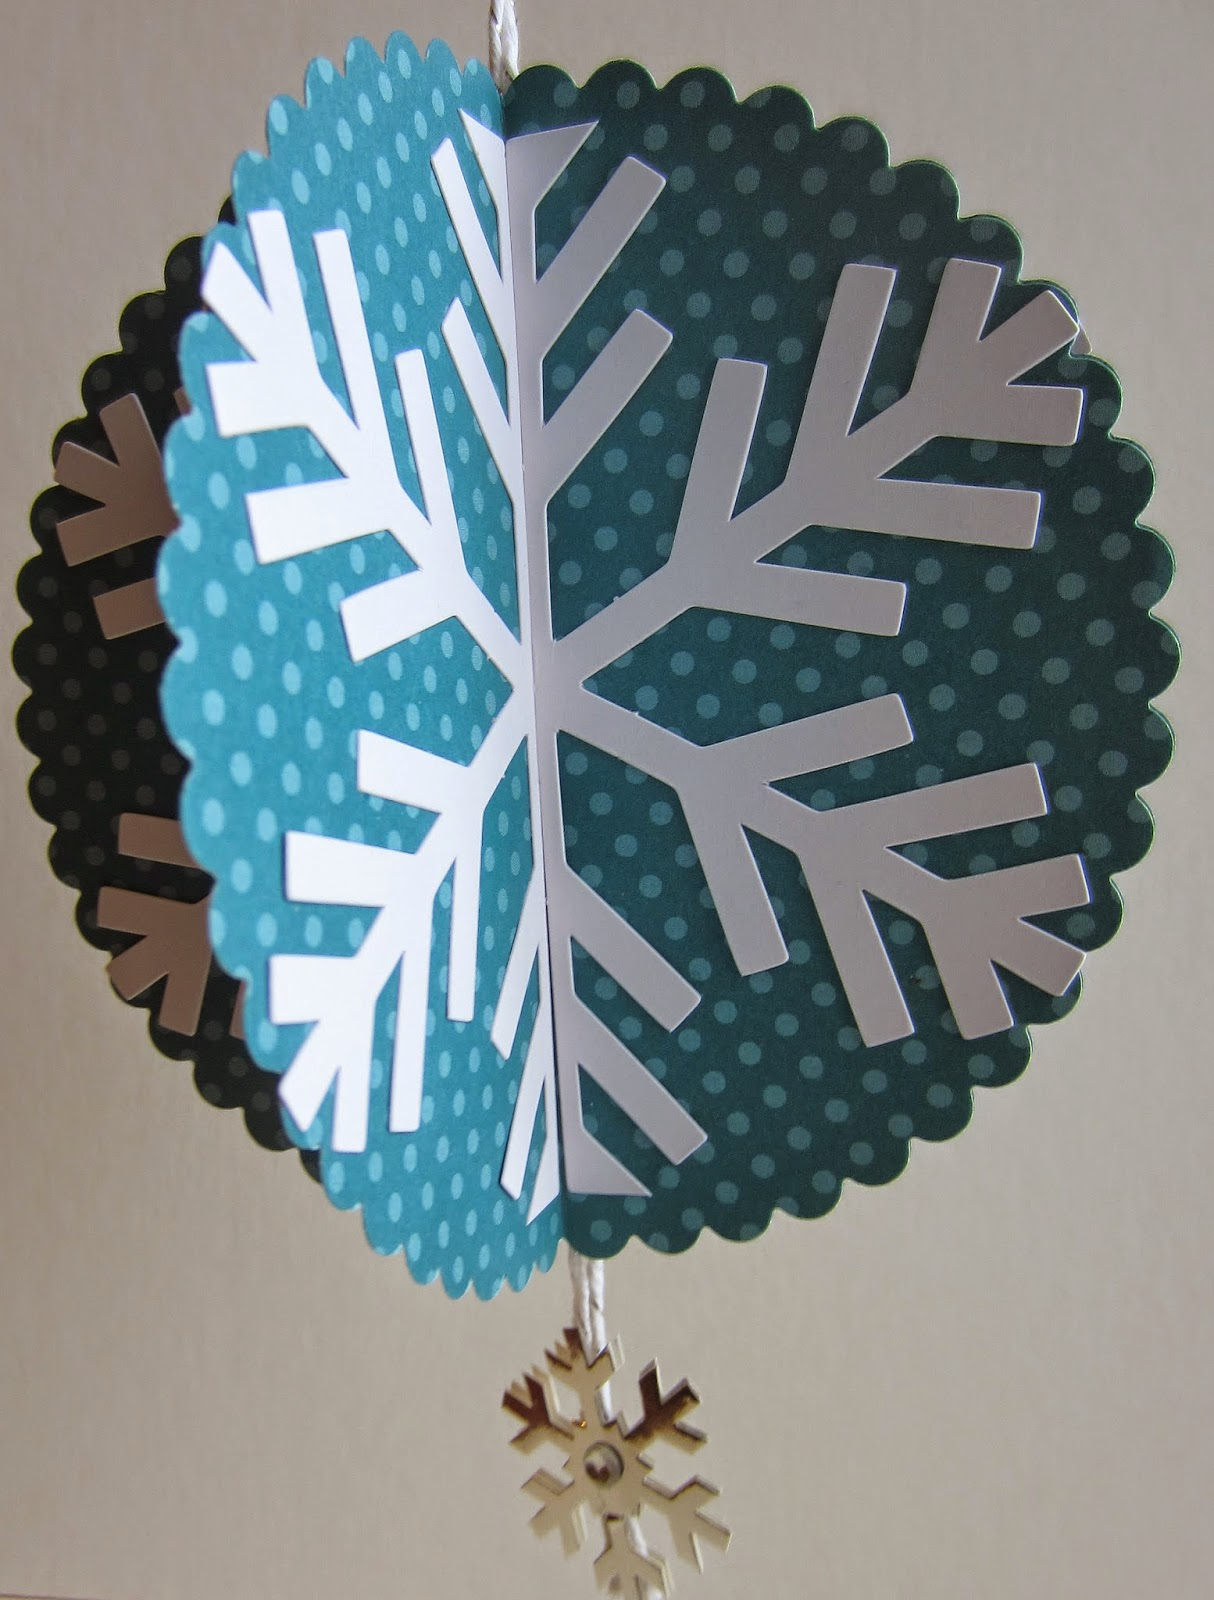 DIY Paper Snowflake Ornament Tutorial from Paper Seedling